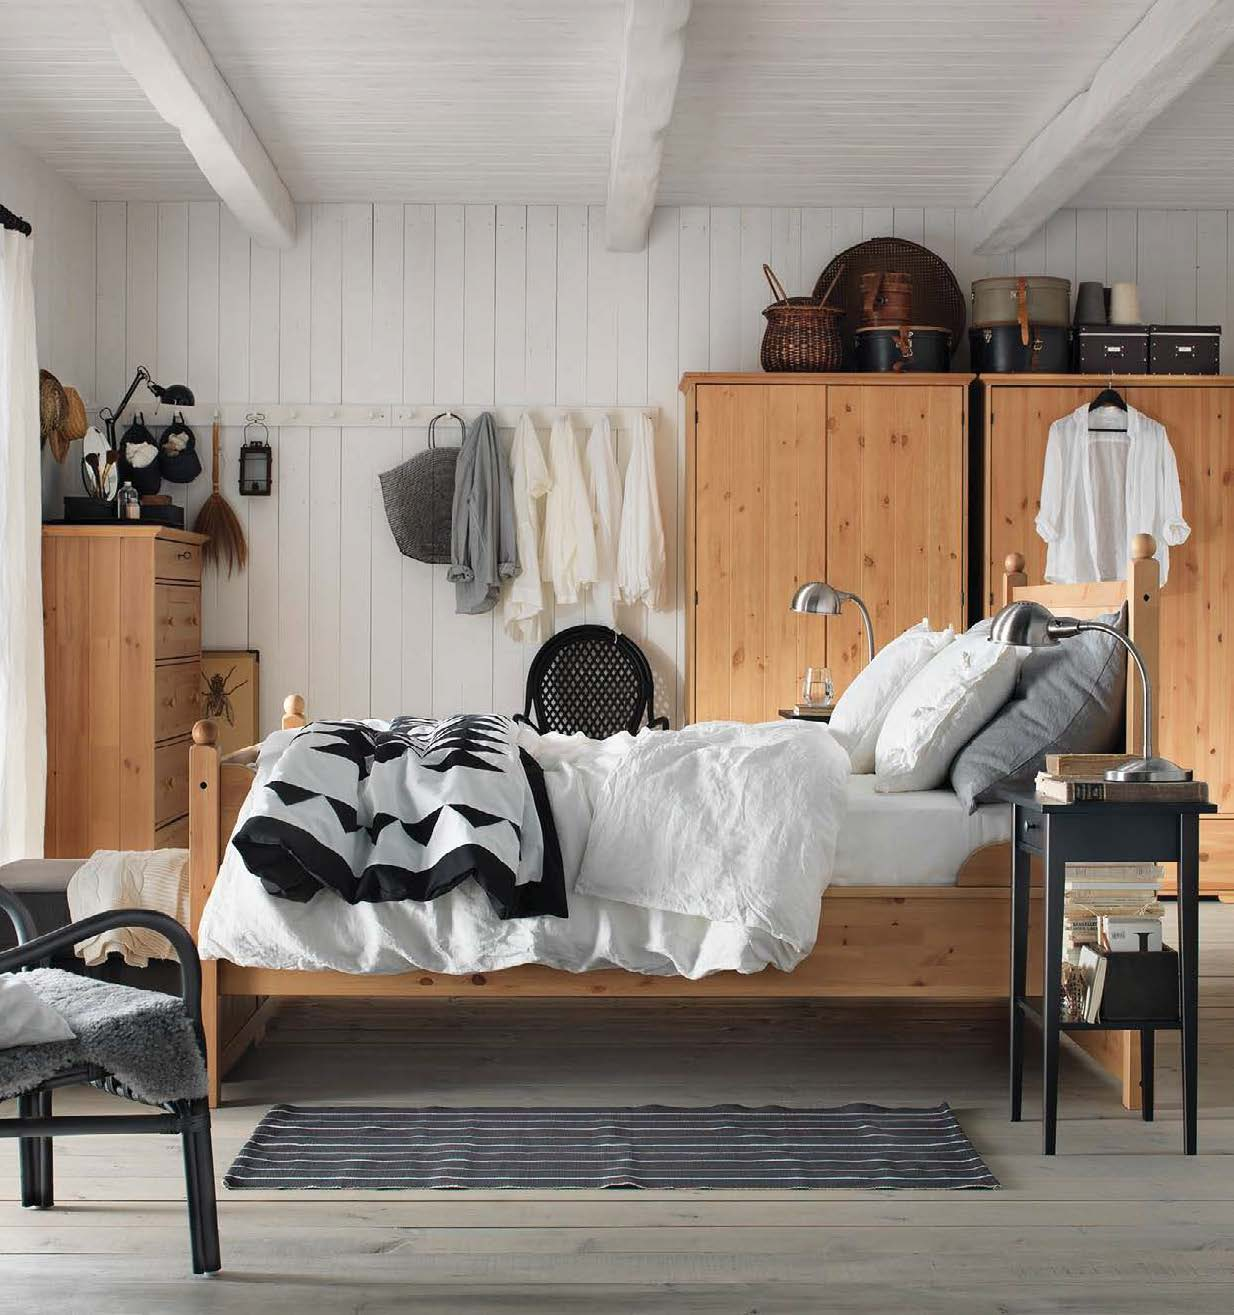 Studio Bedroom Ideas Scandinavian Bedroom Interior Design Ideas